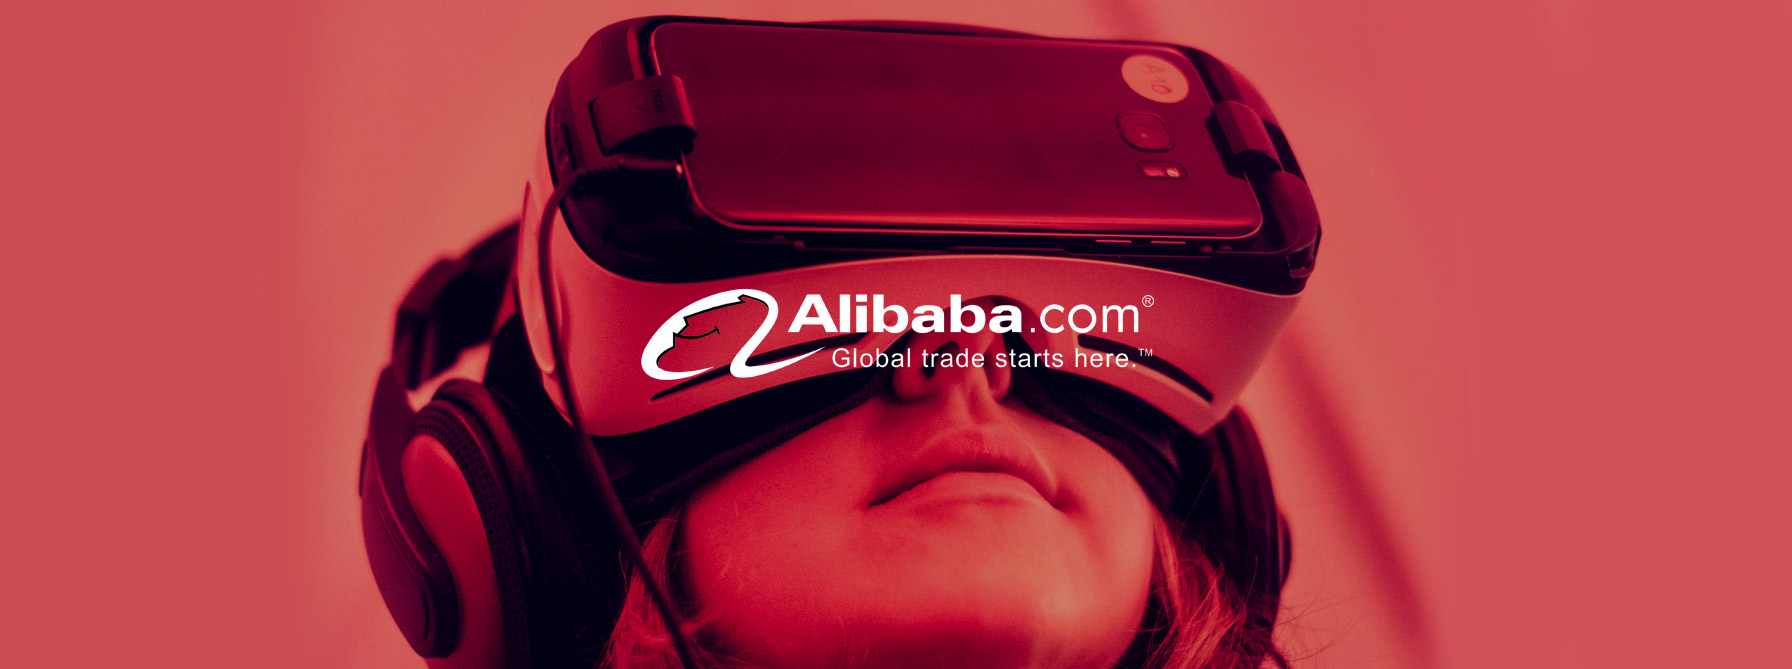 Immersive tech supporting Alibaba's $25.3bn Singles Day header